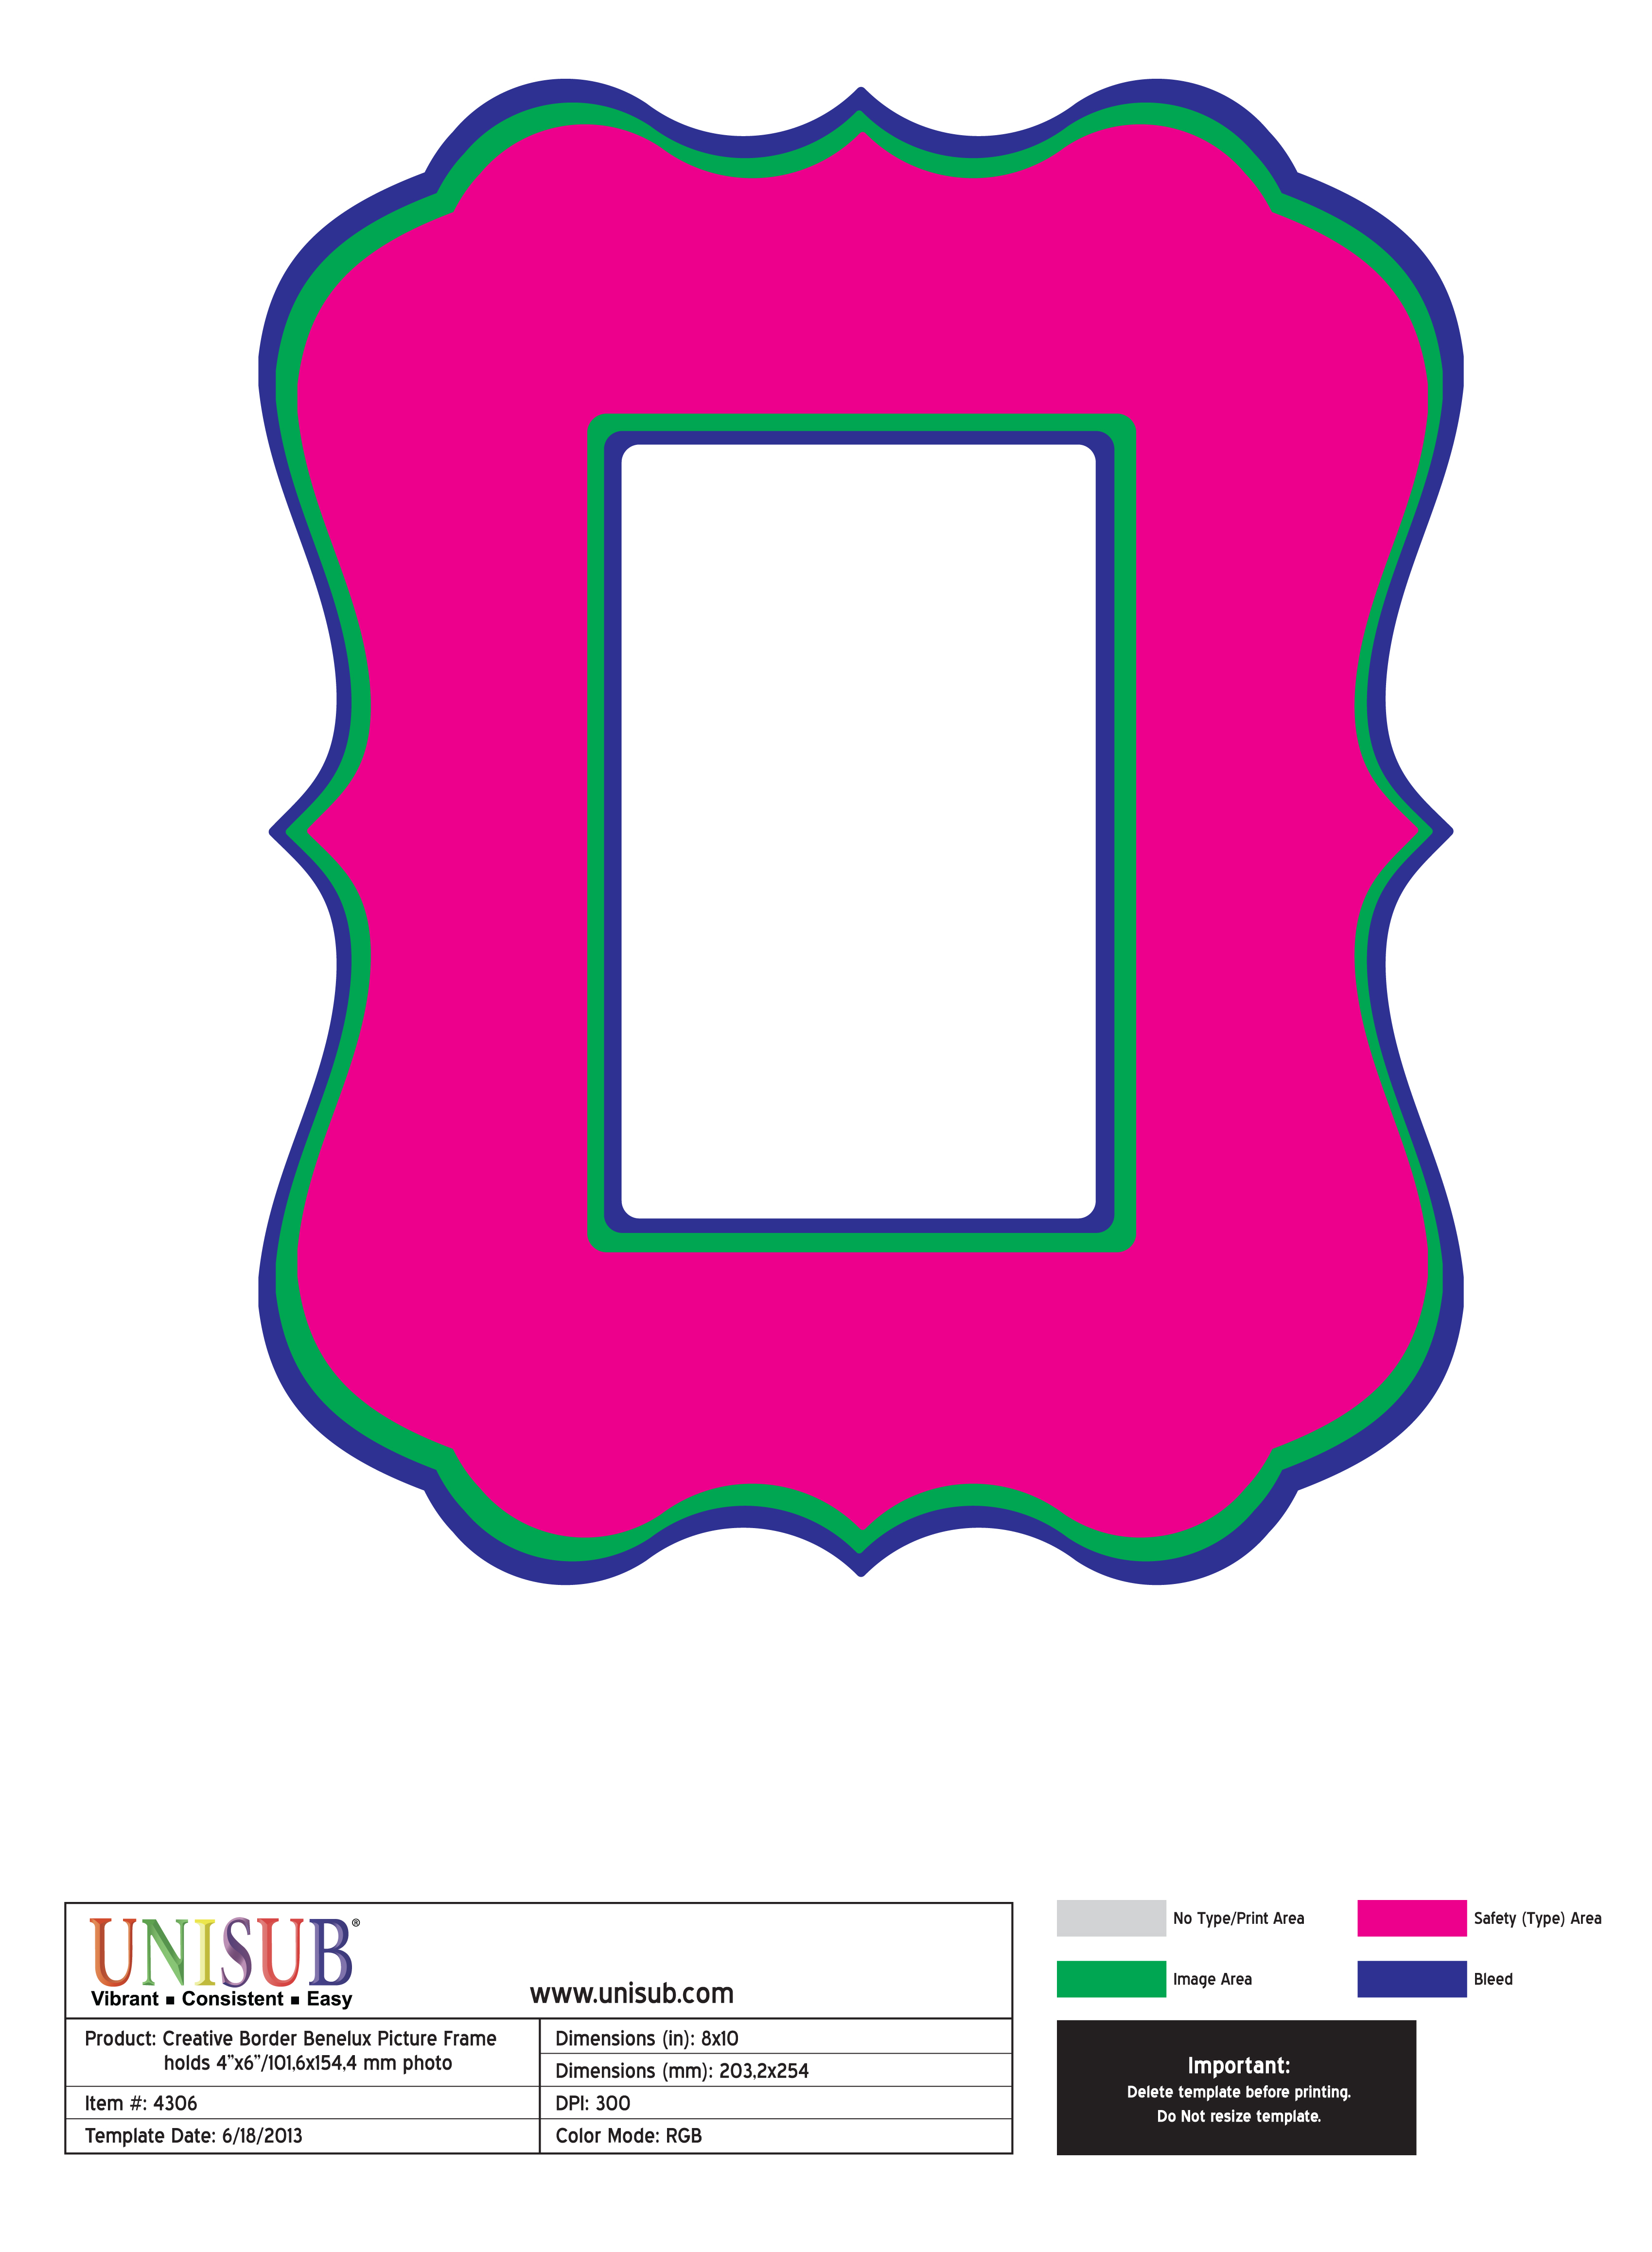 graphic regarding Free Printable Picture Frame Templates titled Free of charge Printable Body Templates N4 totally free impression